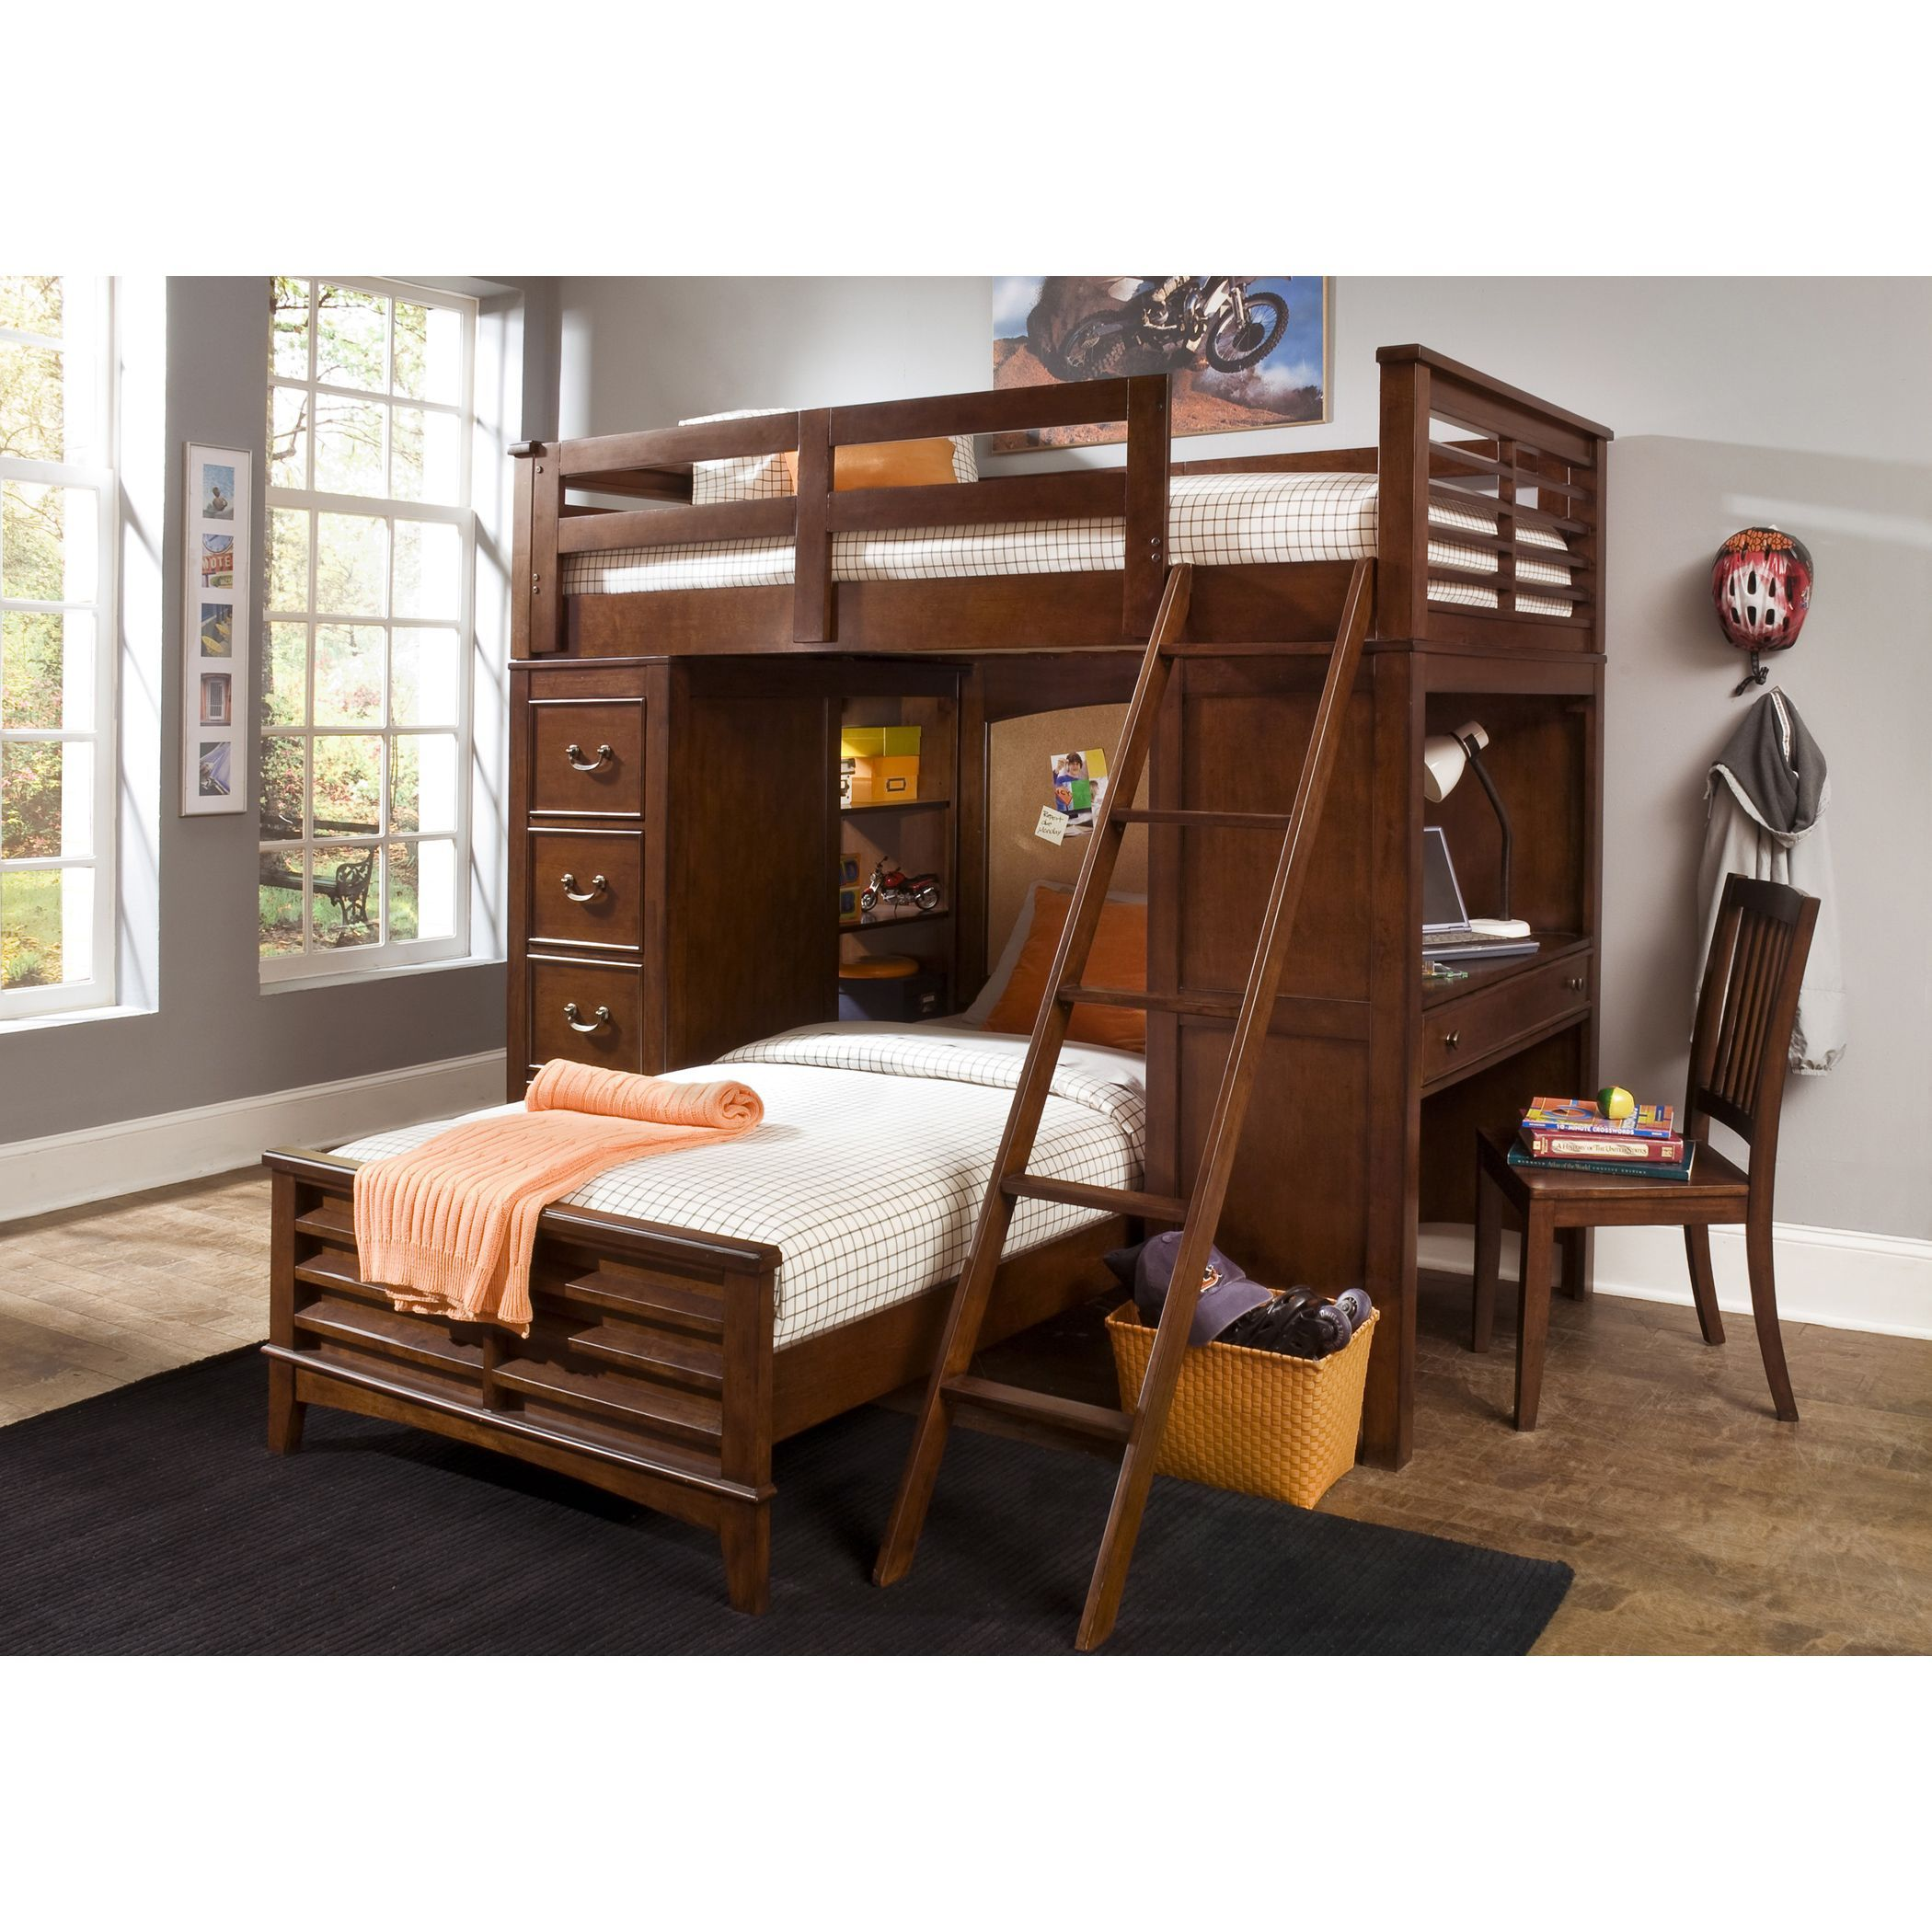 shop for the liberty furniture chelsea square youth twin loft bed unit at johnny janosik your delaware maryland virginia delmarva furniture